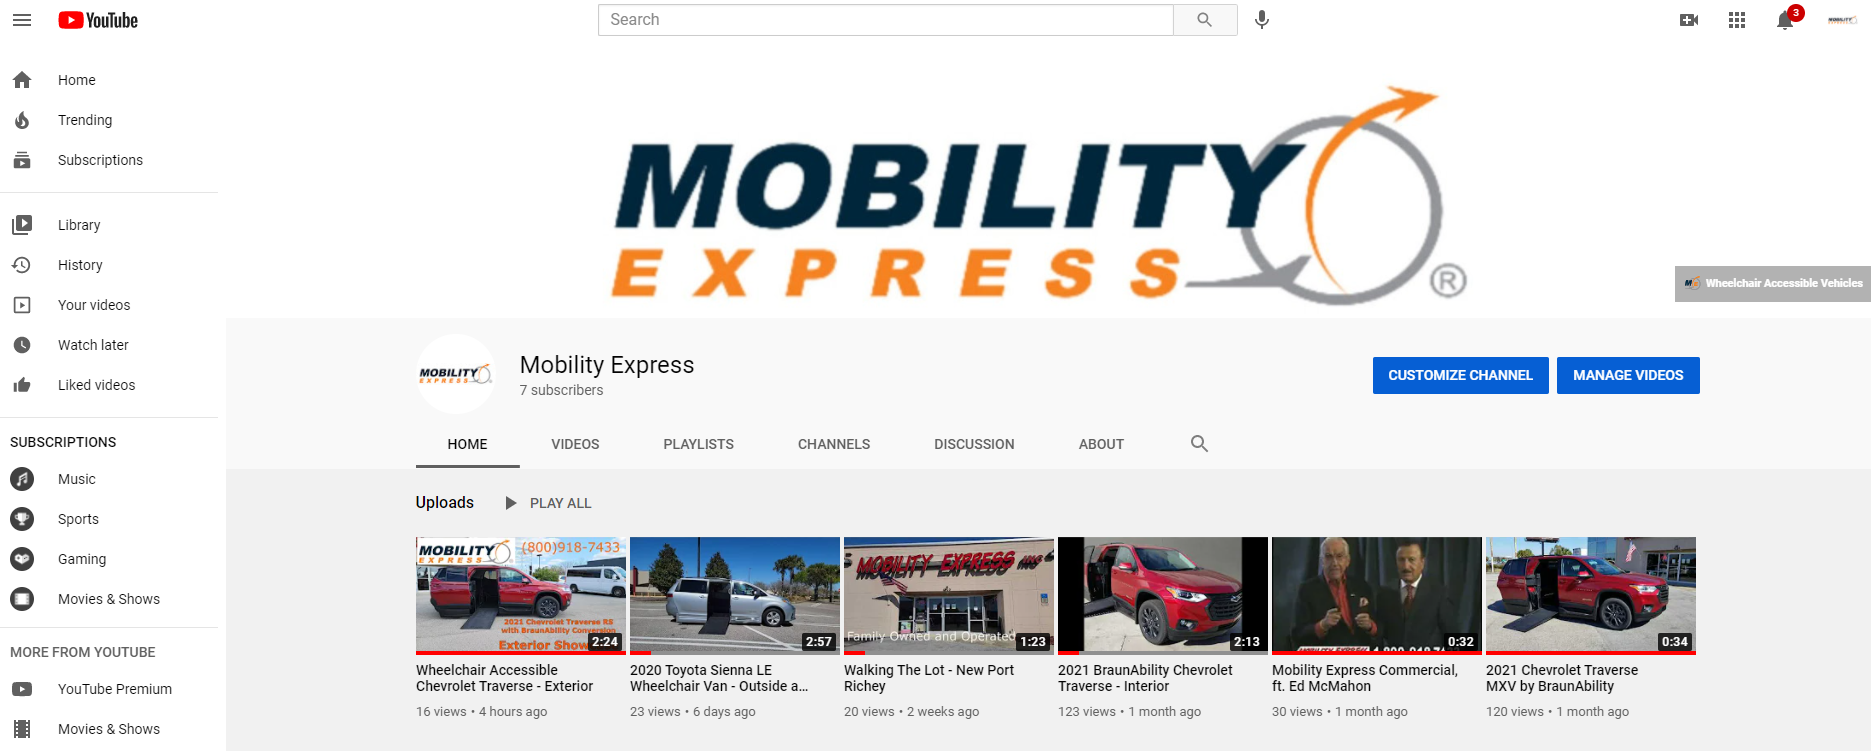 Mobility Express Announces Launch of Official YouTube Channel